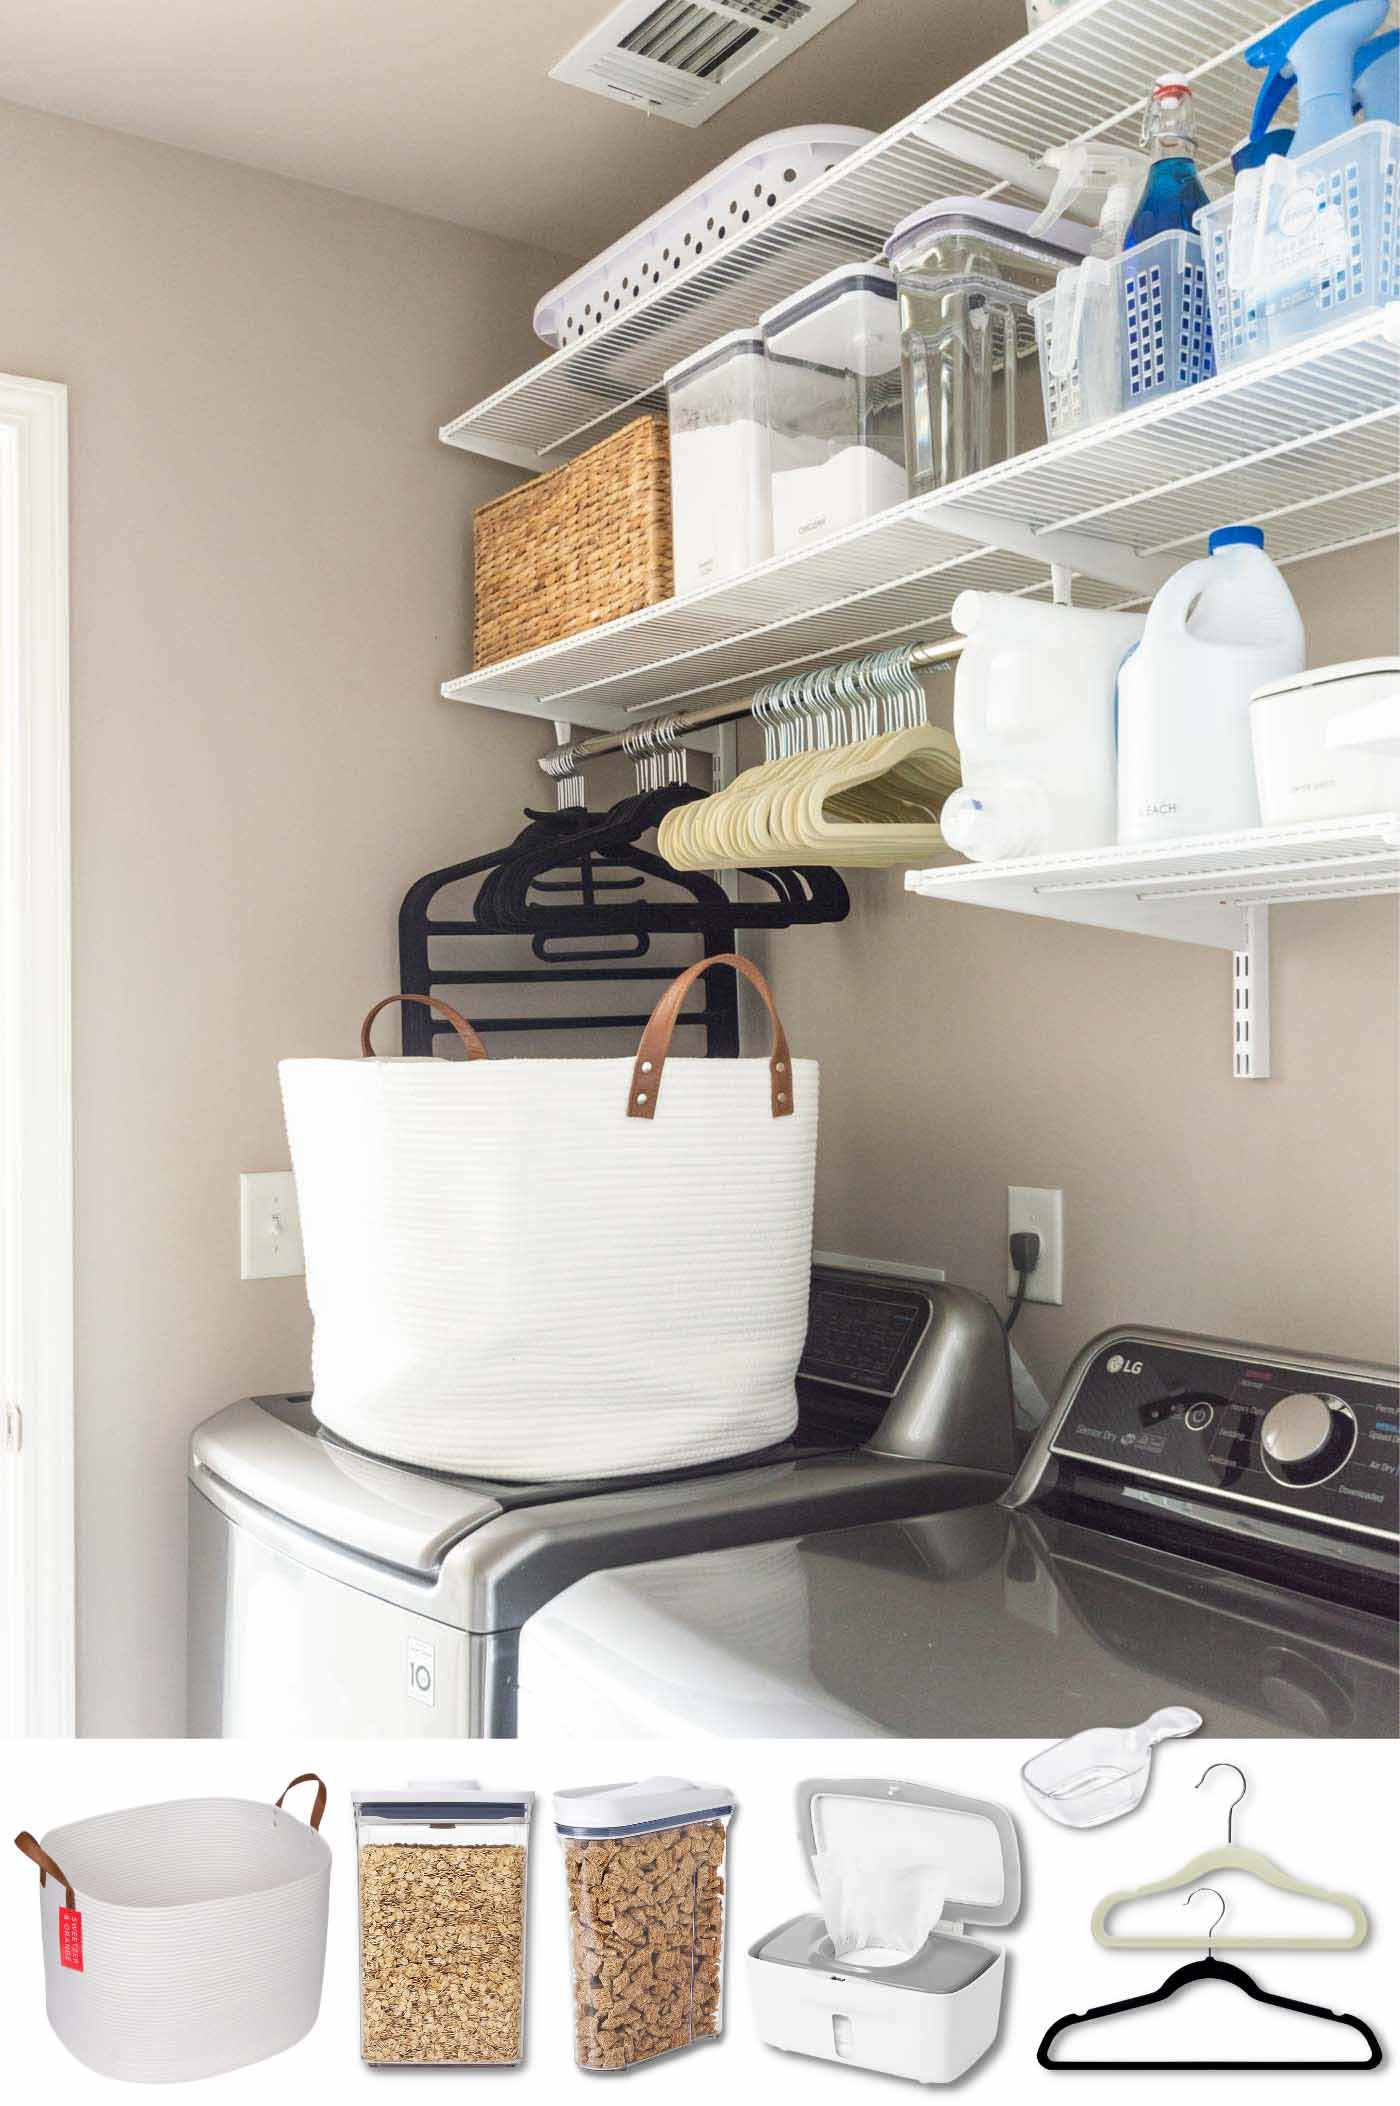 Amazon Home Favorites for Decor and Organization